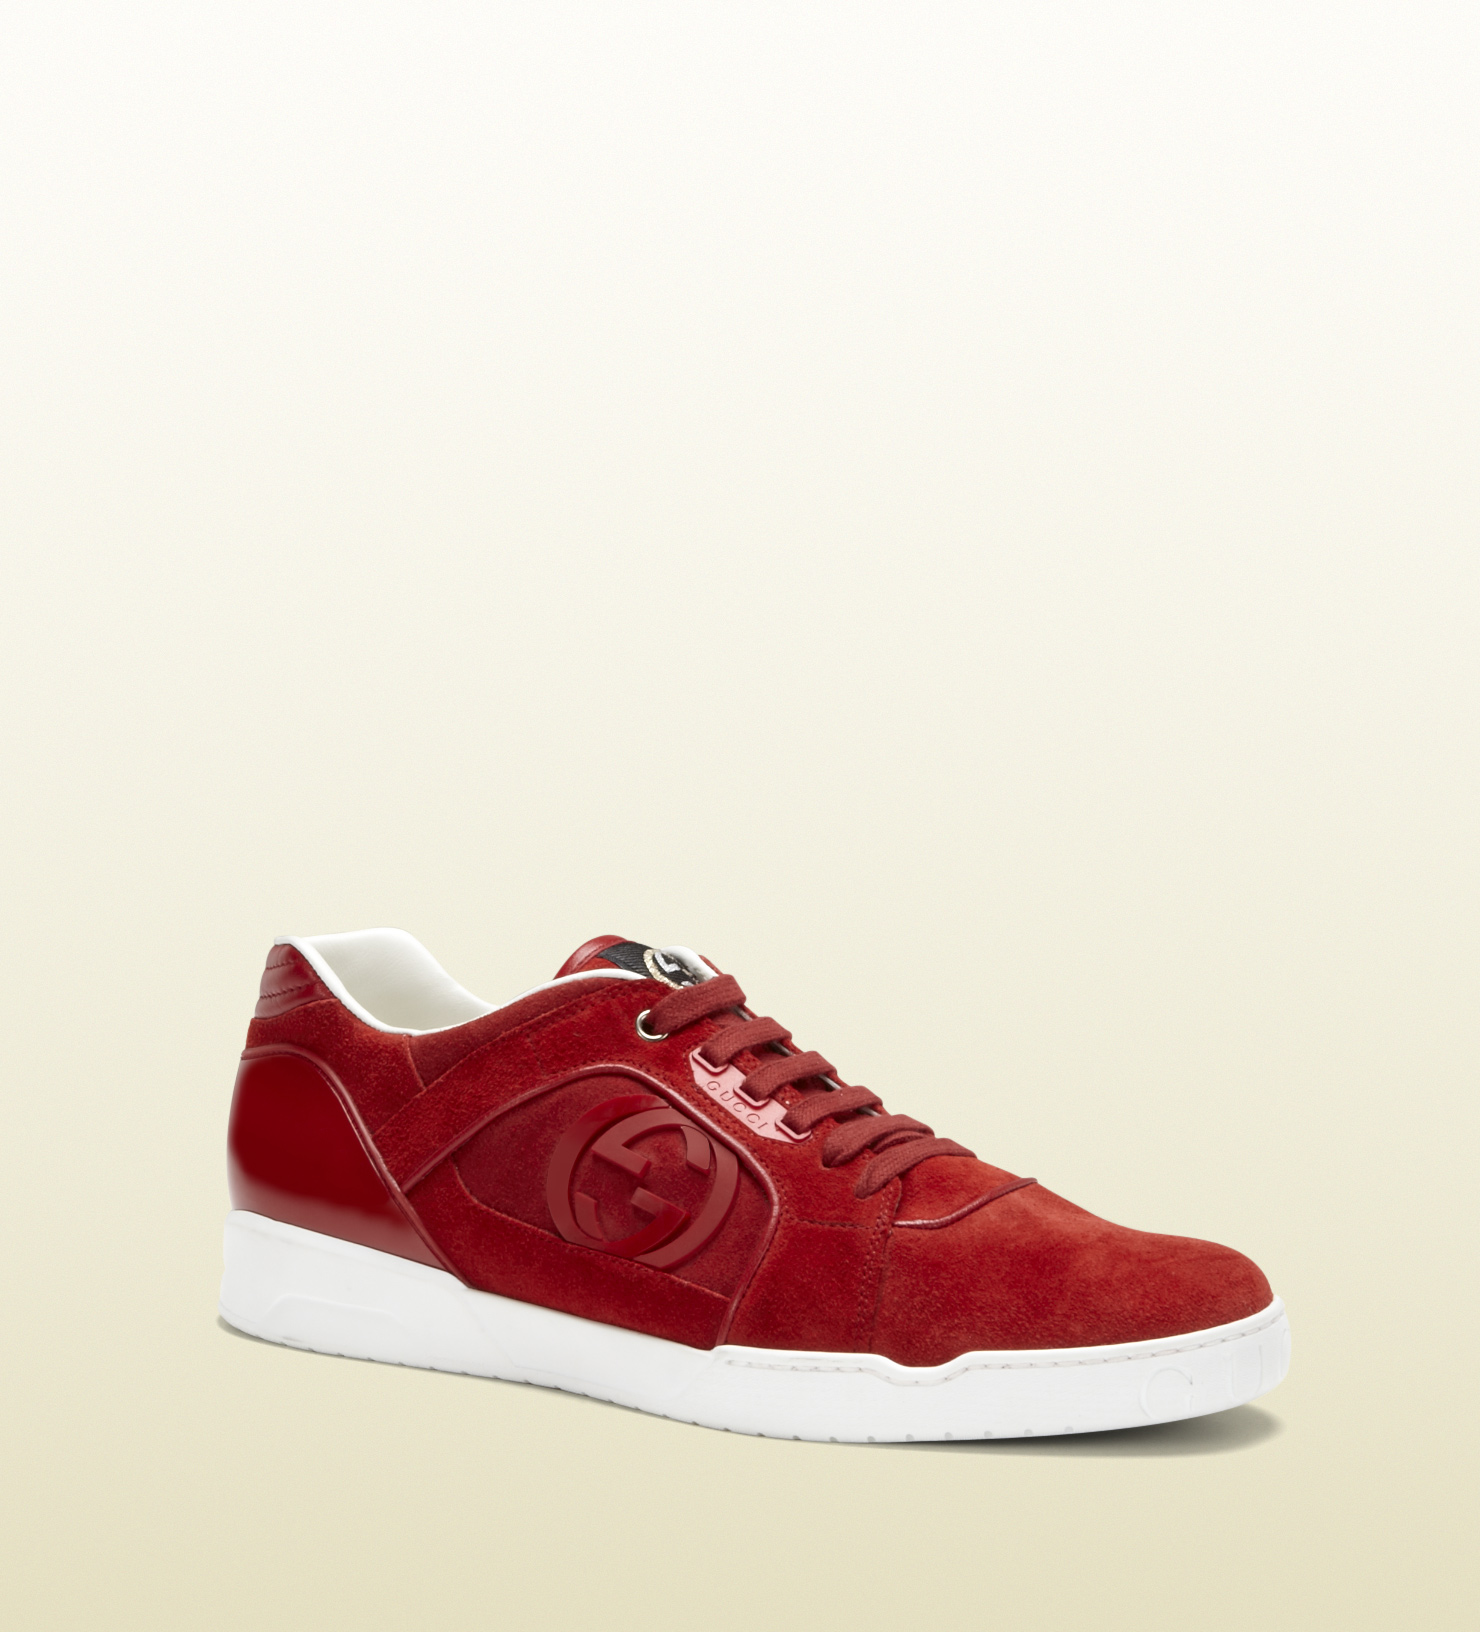 Gucci Leather Lace Up Shoes